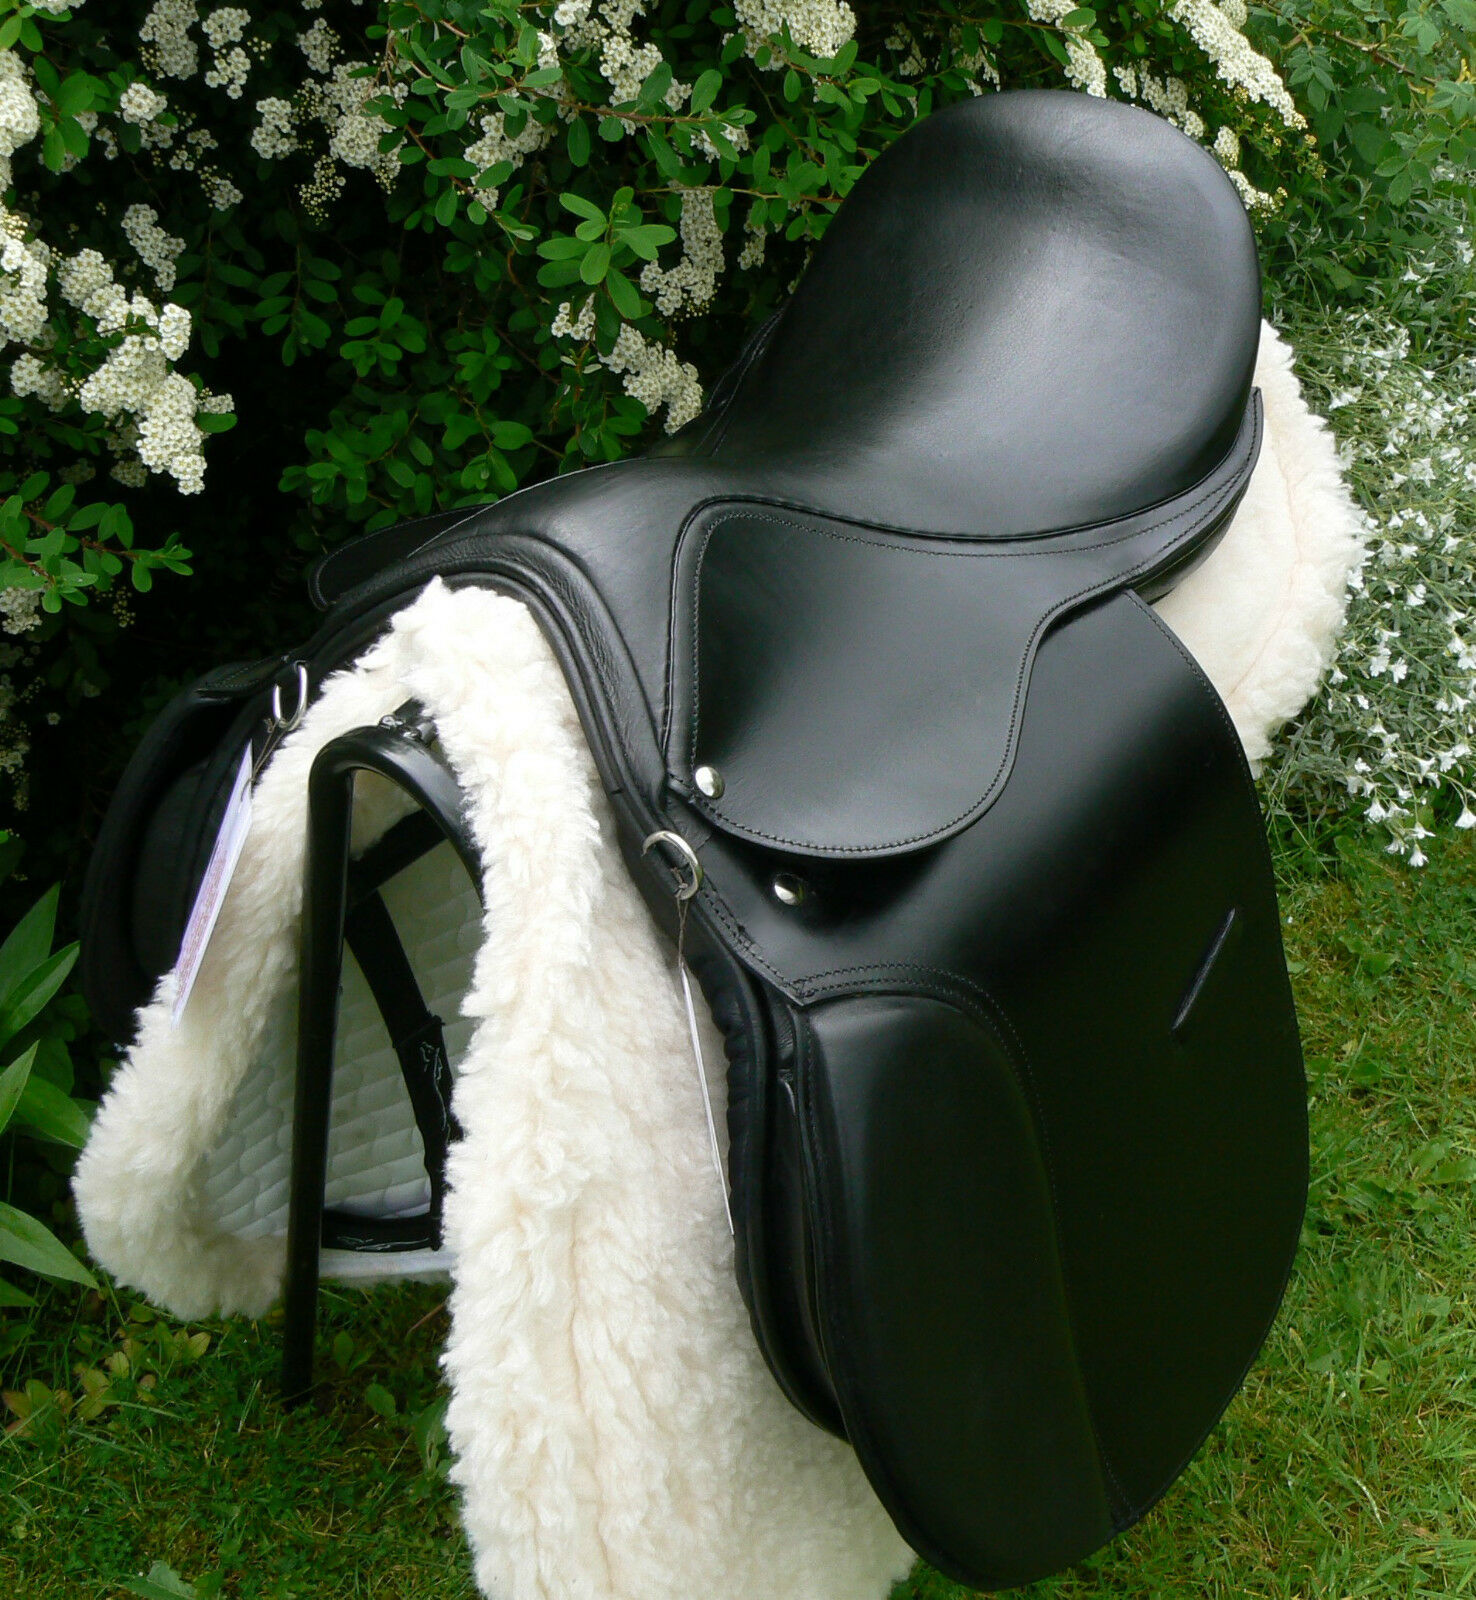 Top value D FLEX COB GP leather saddle especially designed for rounder breeds